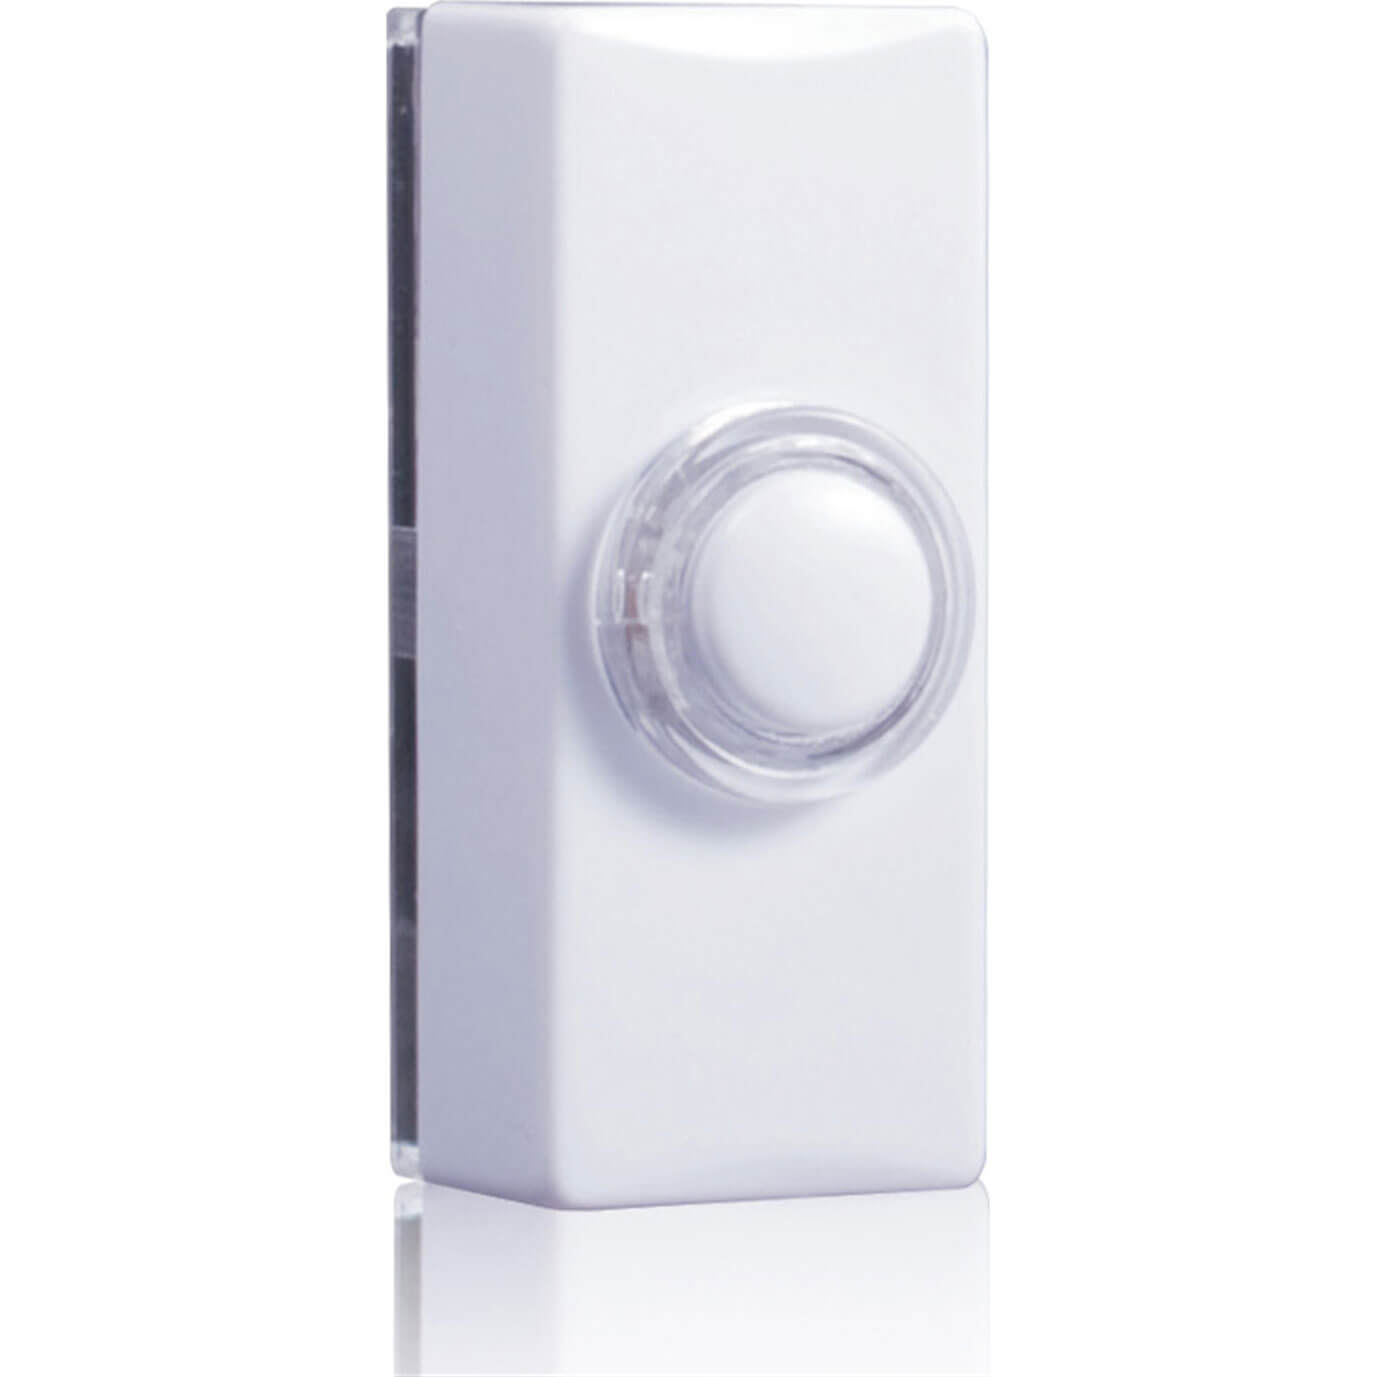 Buy cheap door bell push compare diy prices for best uk for Door bell push